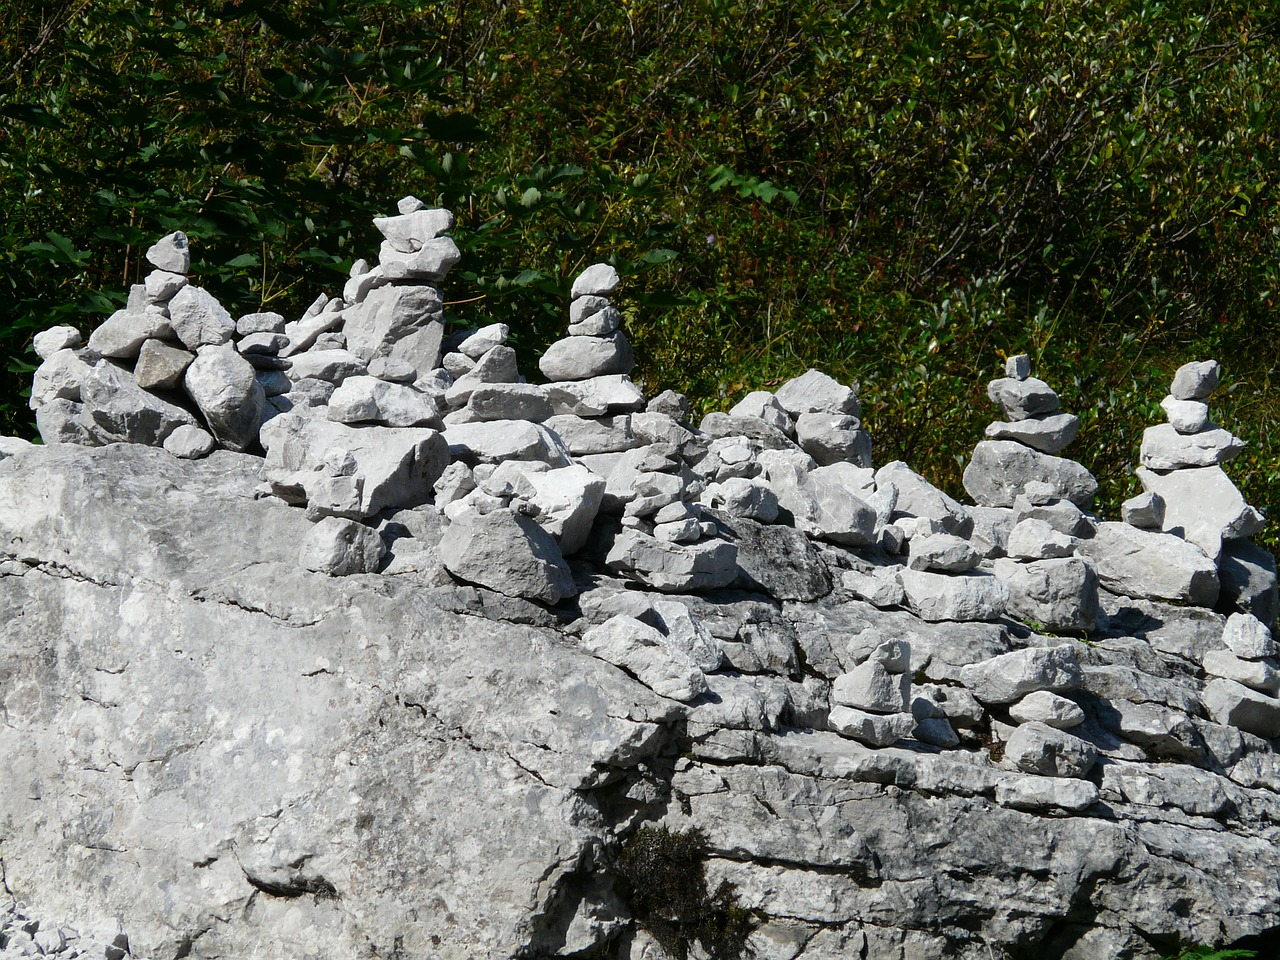 cairn,stones,turret,steinmann,cairns,steinmanderl,stacked together,waymarks,mark,signpost,directory,migratory character,hiking,free pictures, free photos, free images, royalty free, free illustrations, public domain